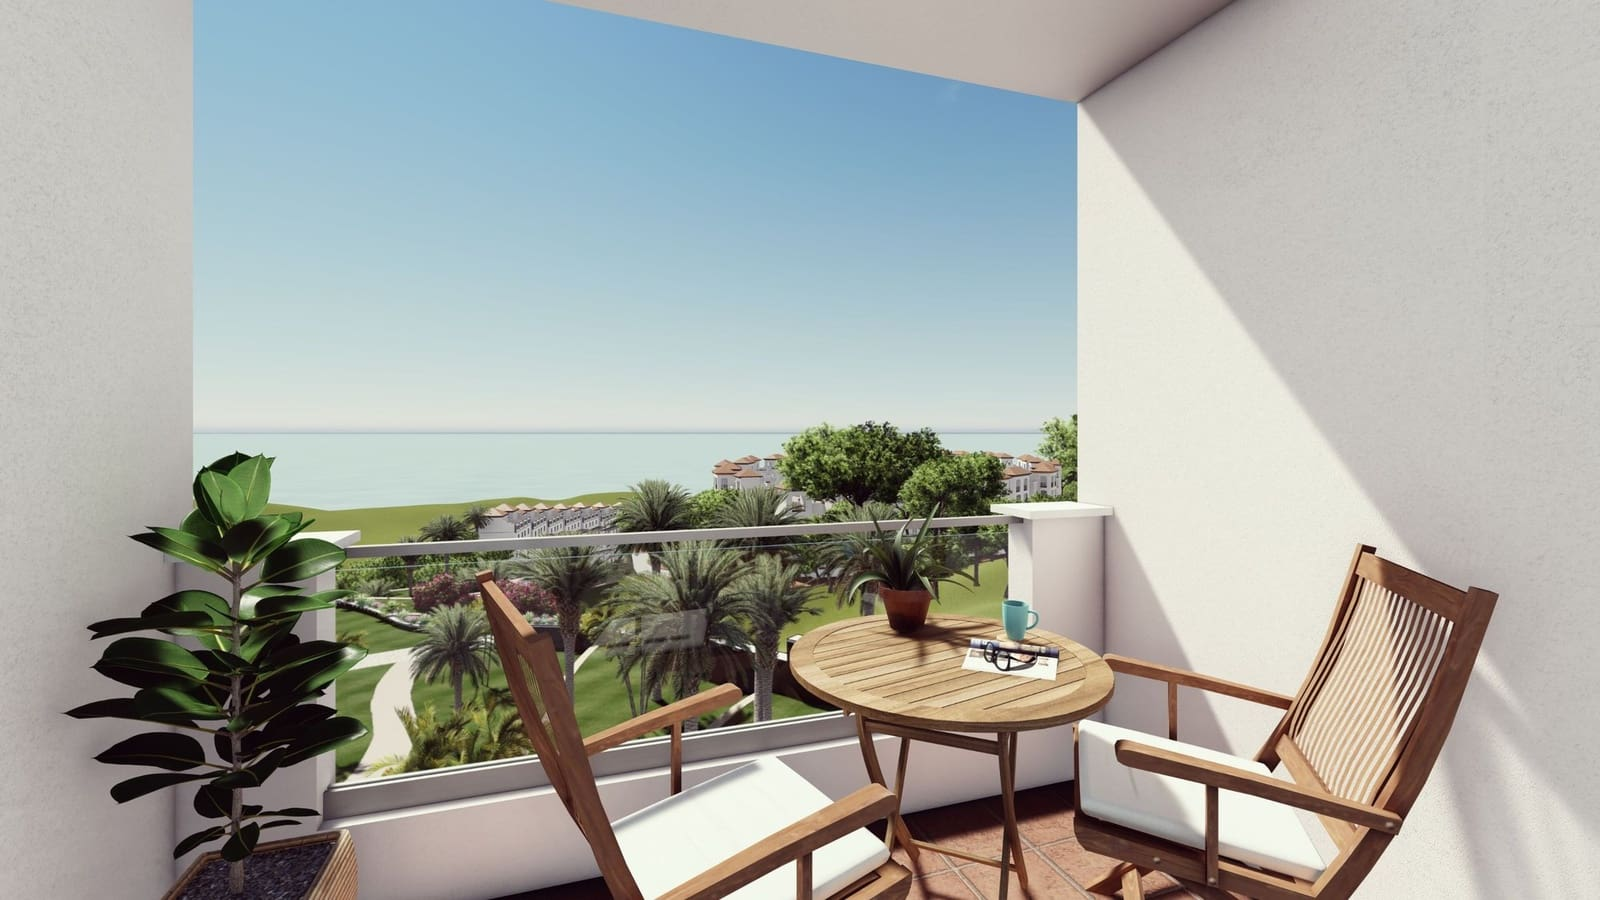 3 bedroom Apartment for sale in Manilva with pool garage - € 113,900 (Ref: 4880726)